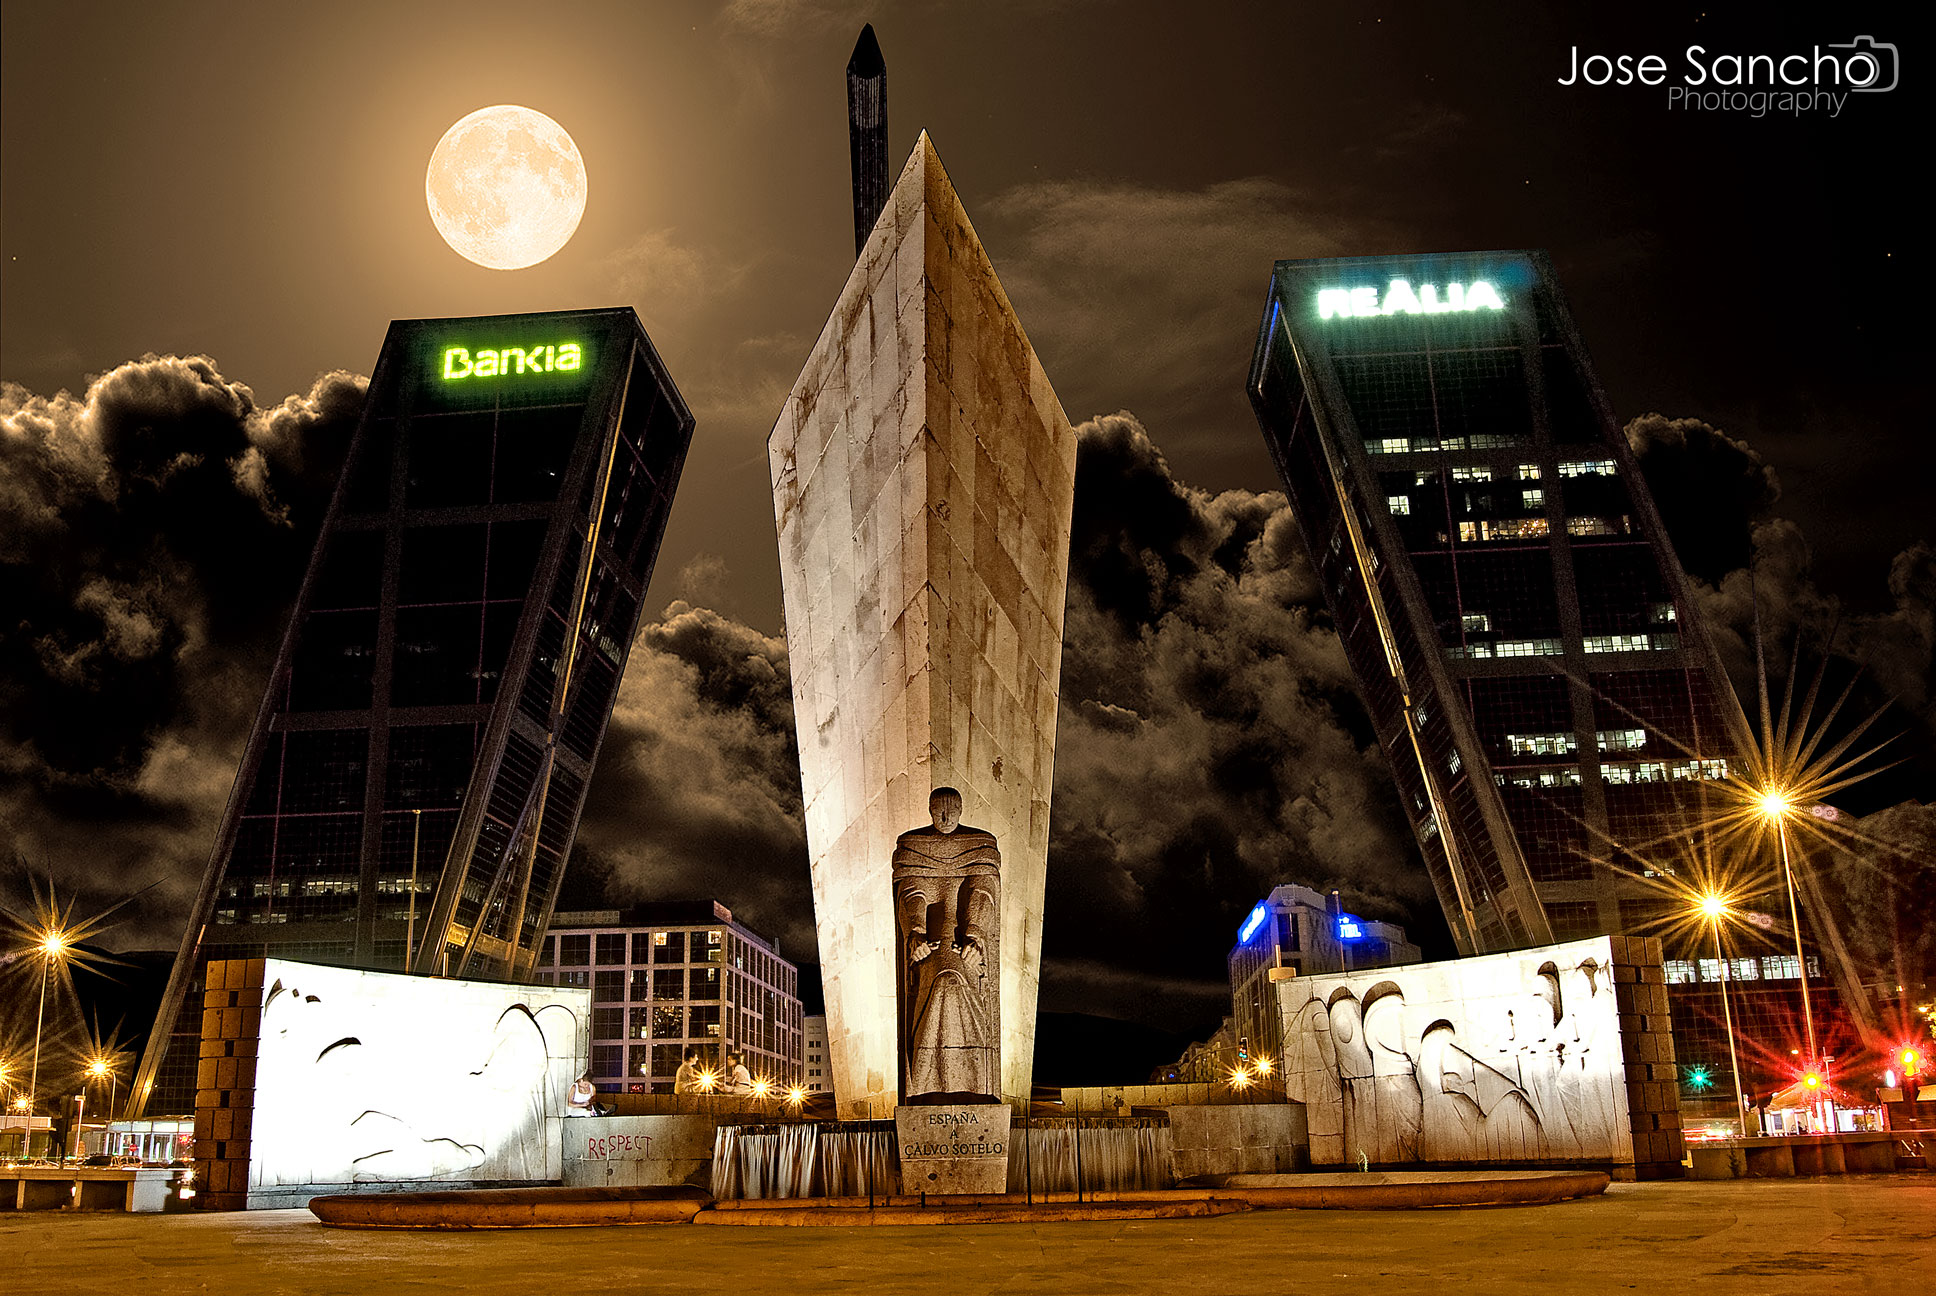 Plaza Castilla - Jose Sancho Photography